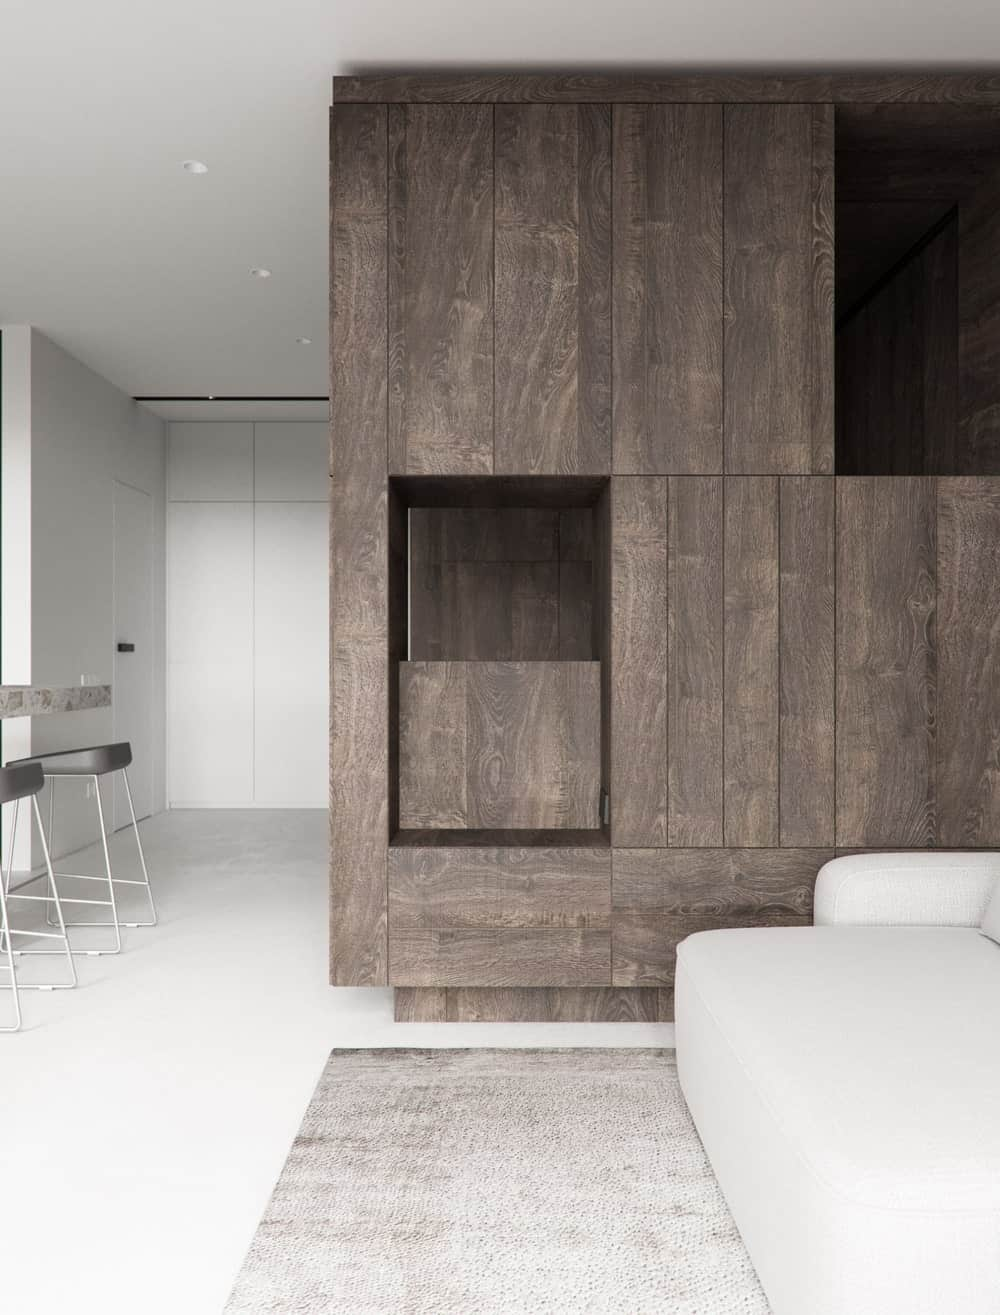 The wooden structure of the bedroom also serves as a shelving and wooden cabinetry of the living room.